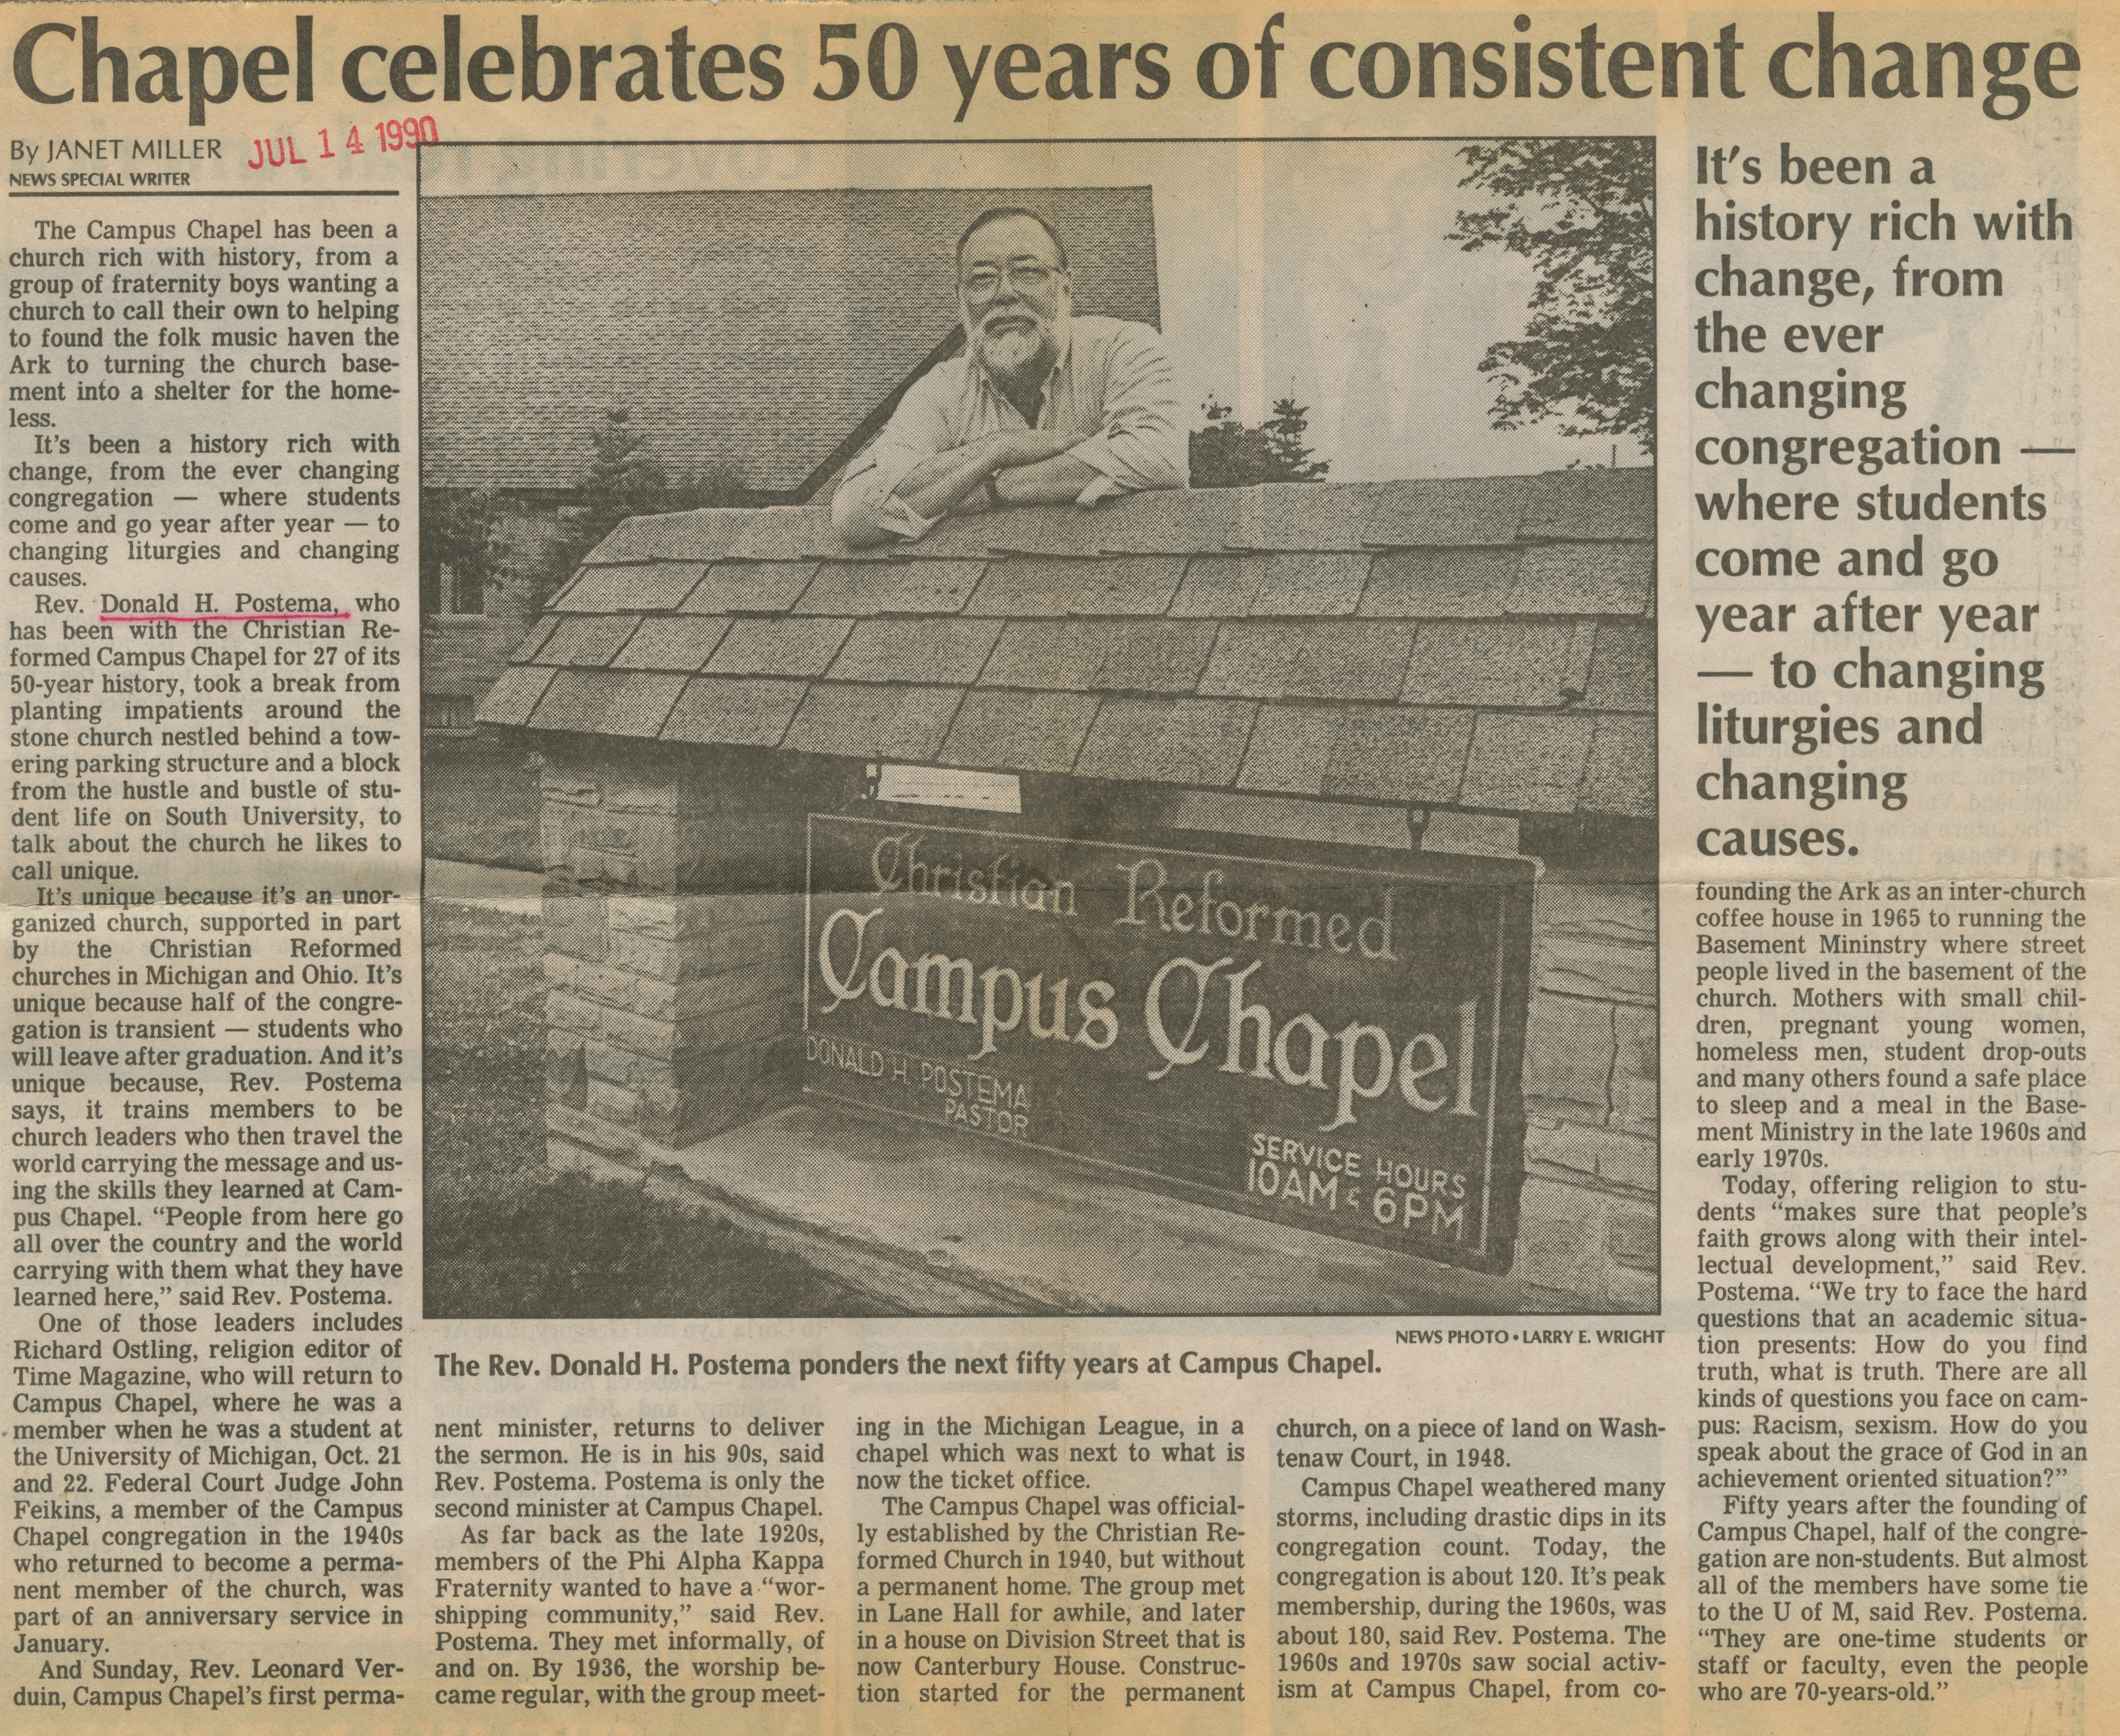 Chapel celebrates 50 years of consistent change image